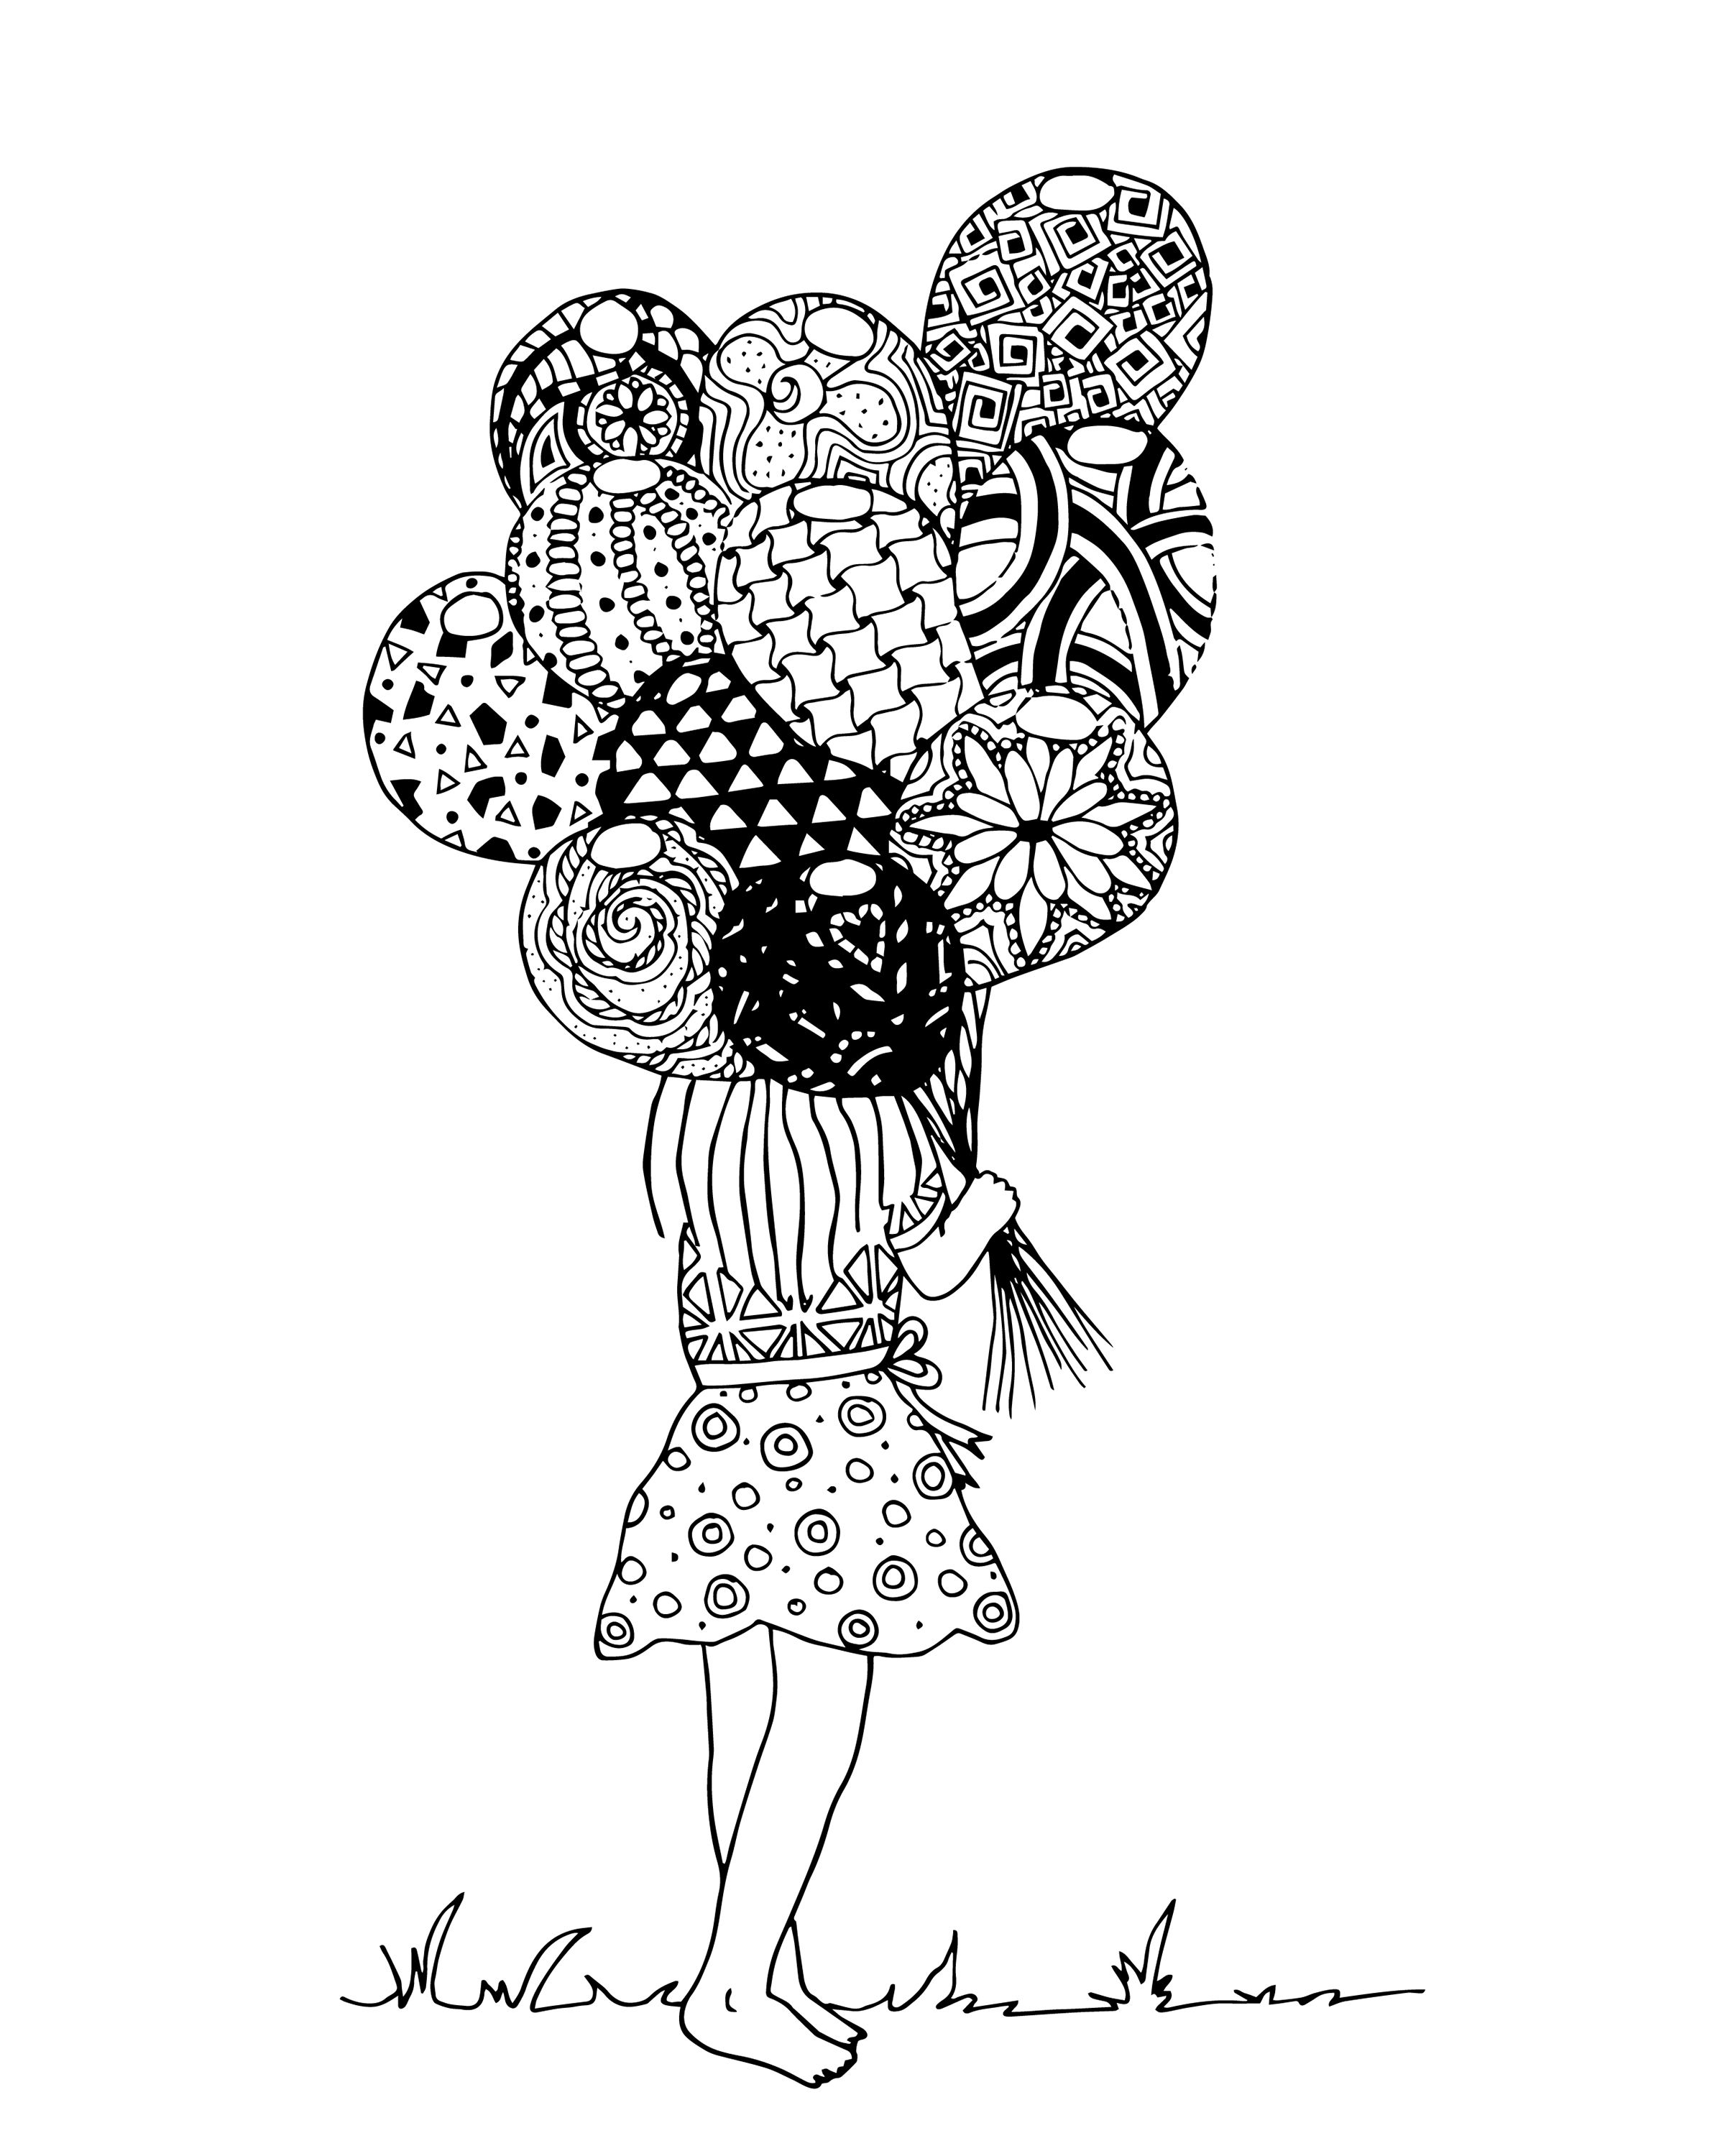 FREE Downloadable Coloring Page For Adults A Little Girl Holding Handful Of Balloons Image Is Made With Zentangle Designs